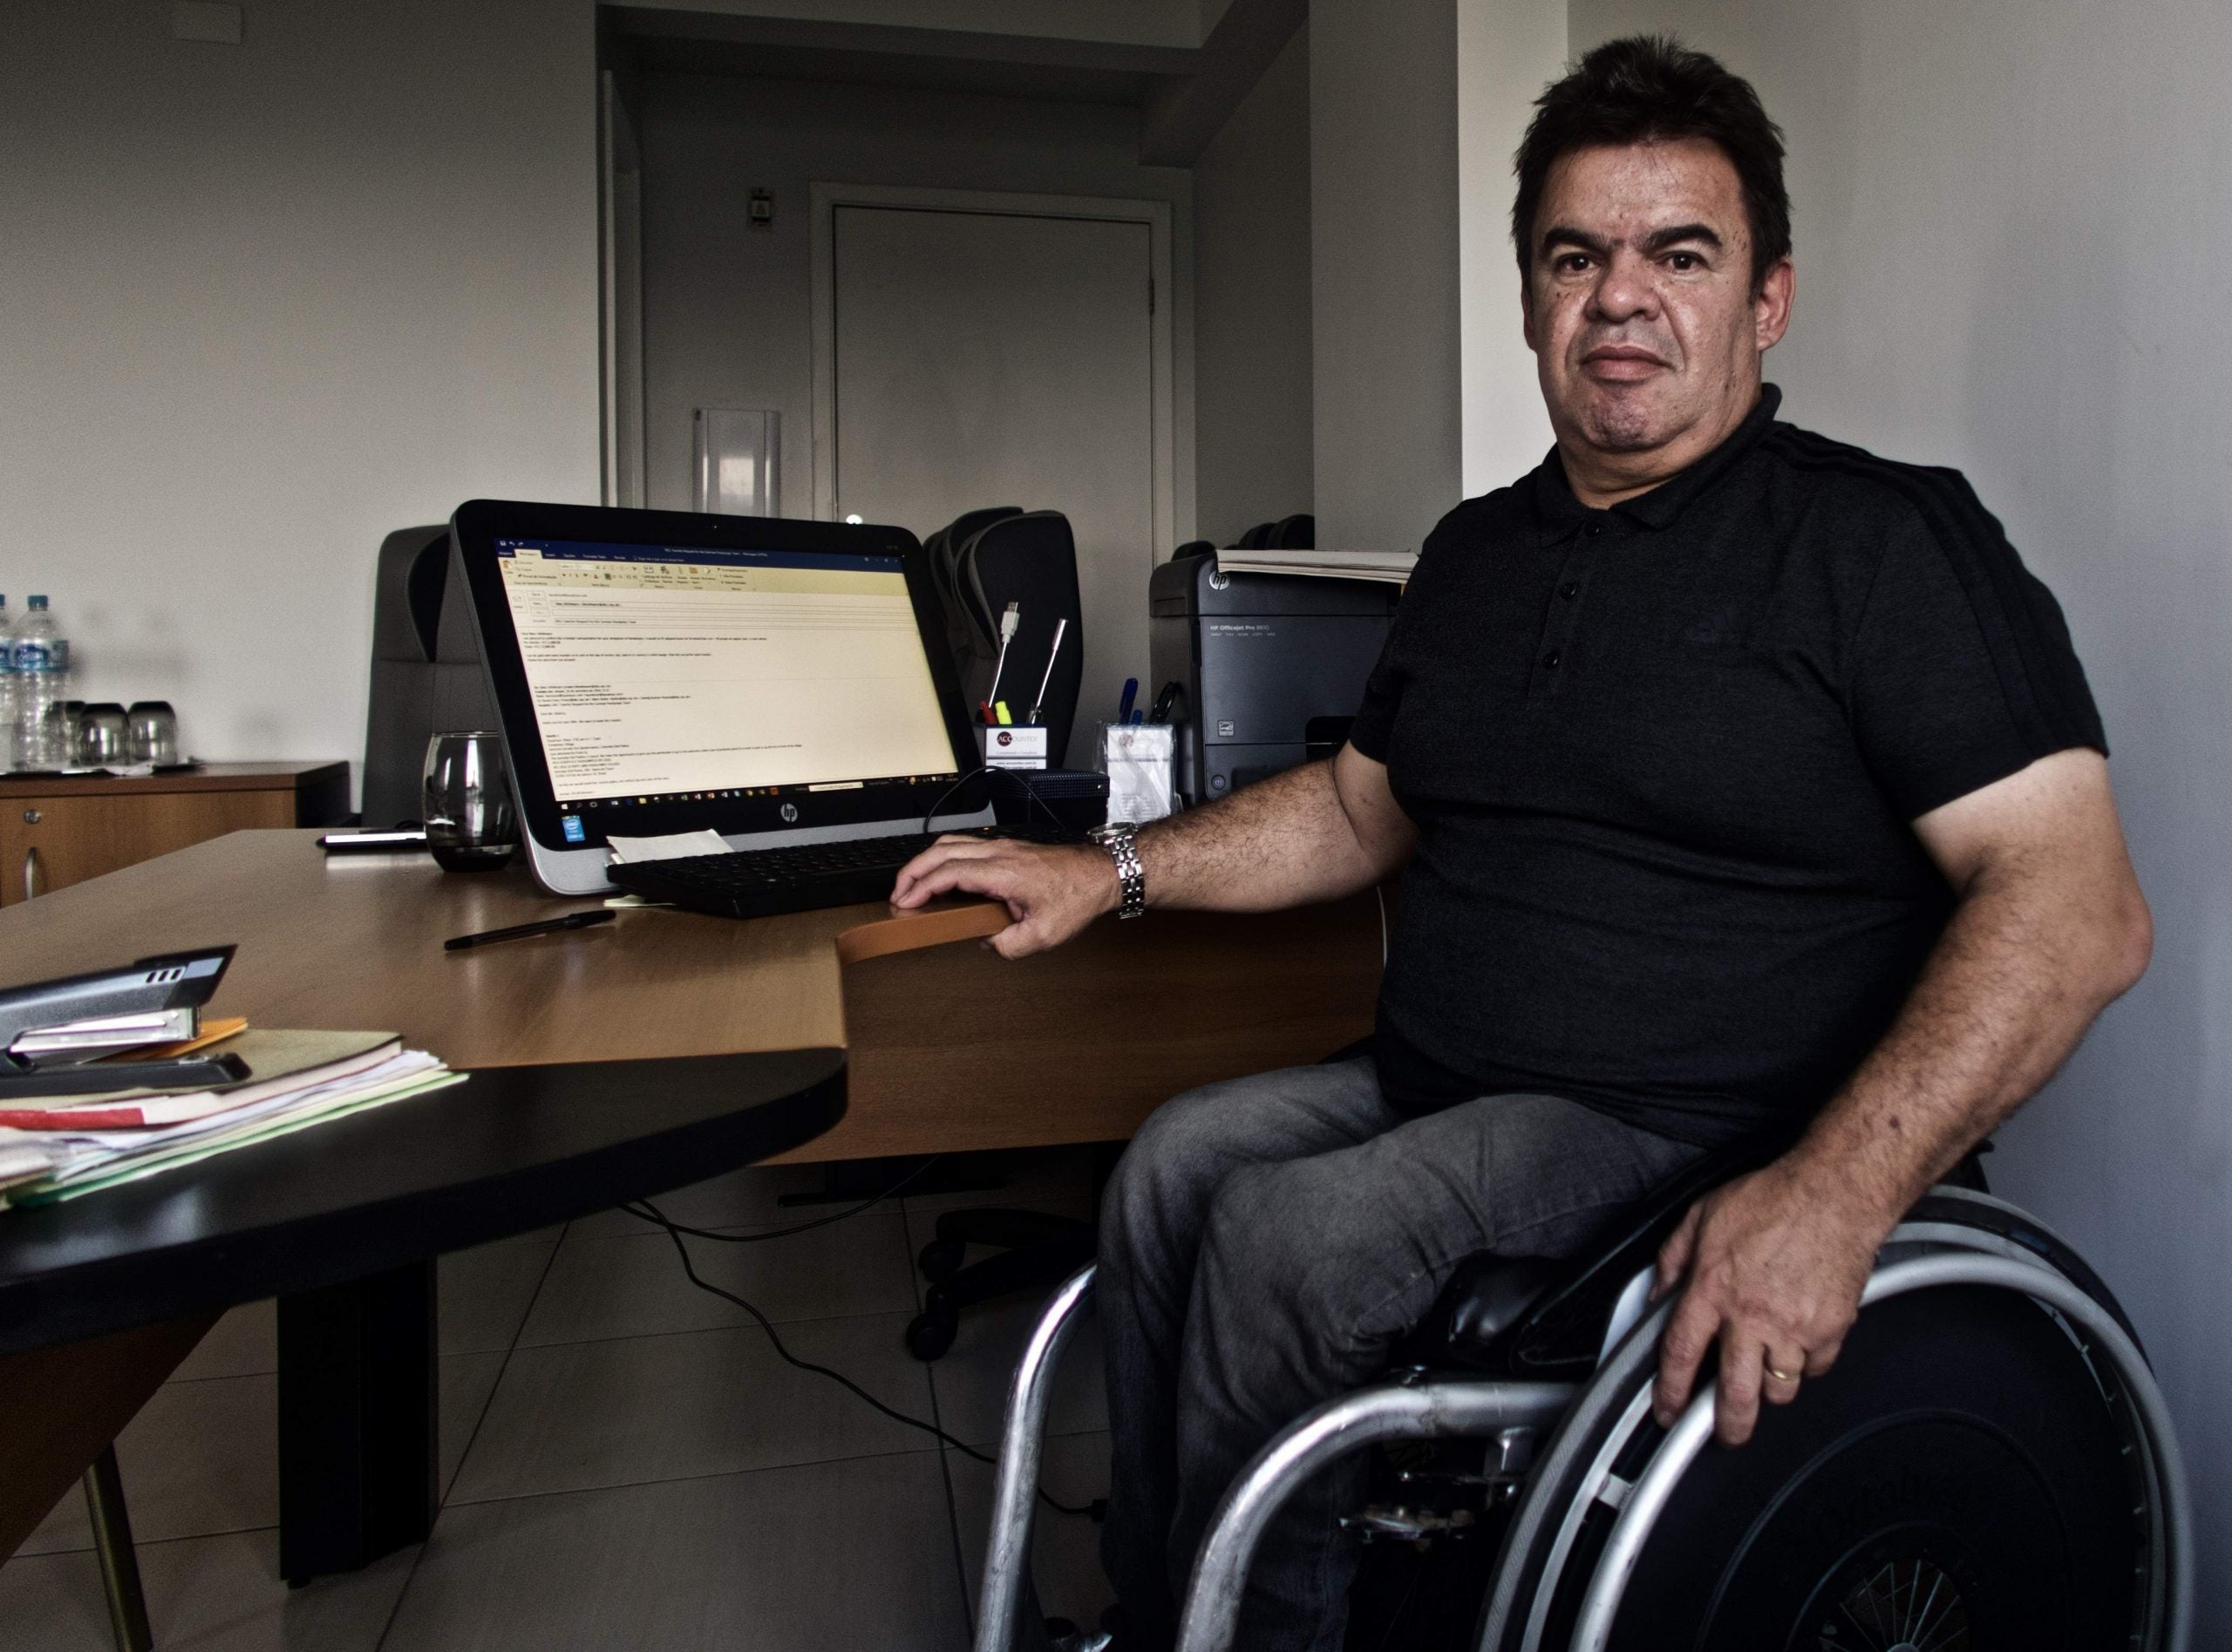 On the road in Rio: will the Paralympic legacy bring equality for Brazilians with disabilities?